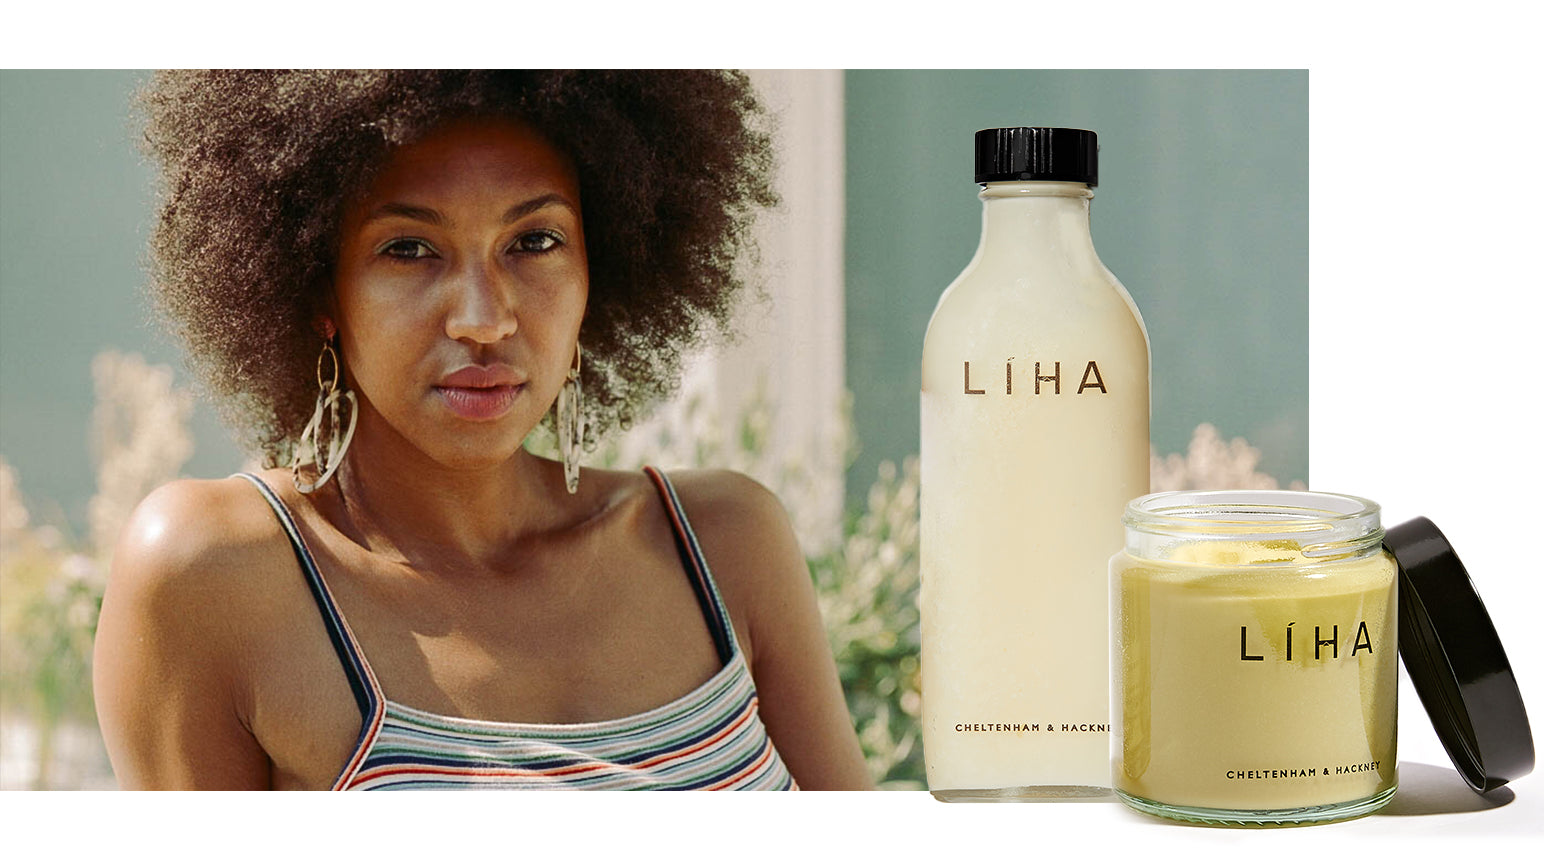 Liha Beauty